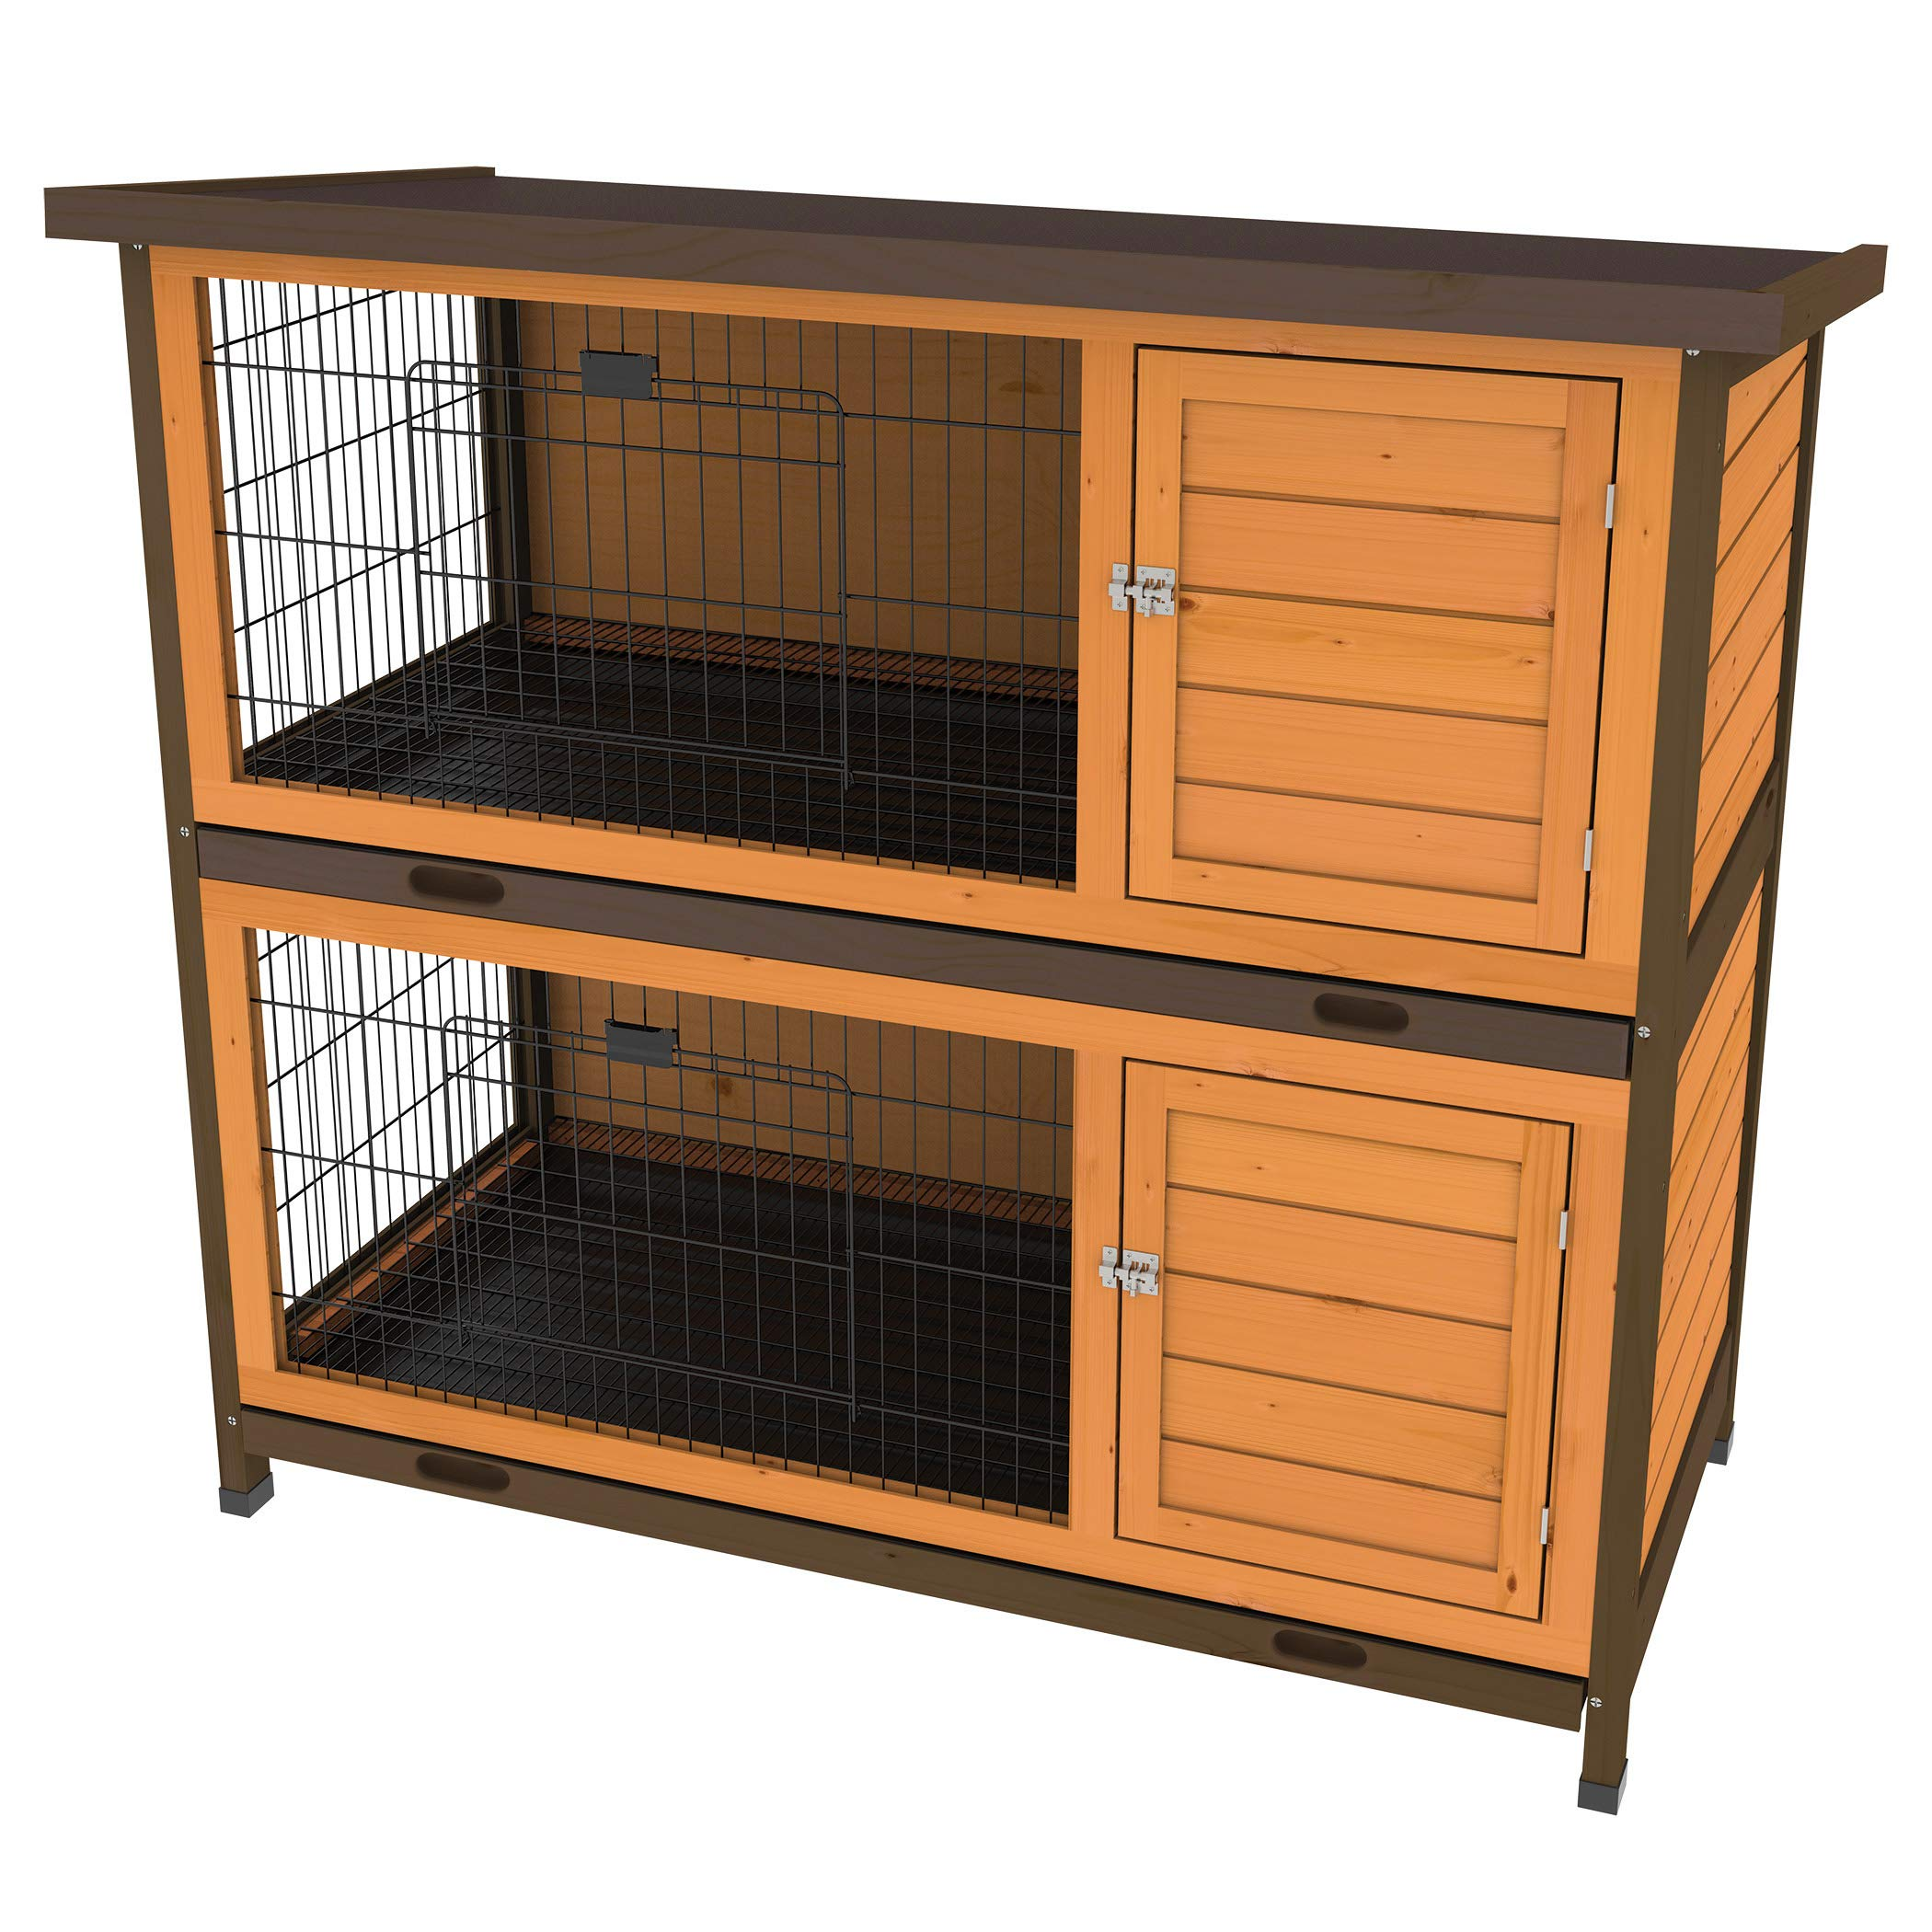 Ware Manufacturing Premium Plus Double Decker Hutch for Rabbits and Small Pets by Ware Manufacturing